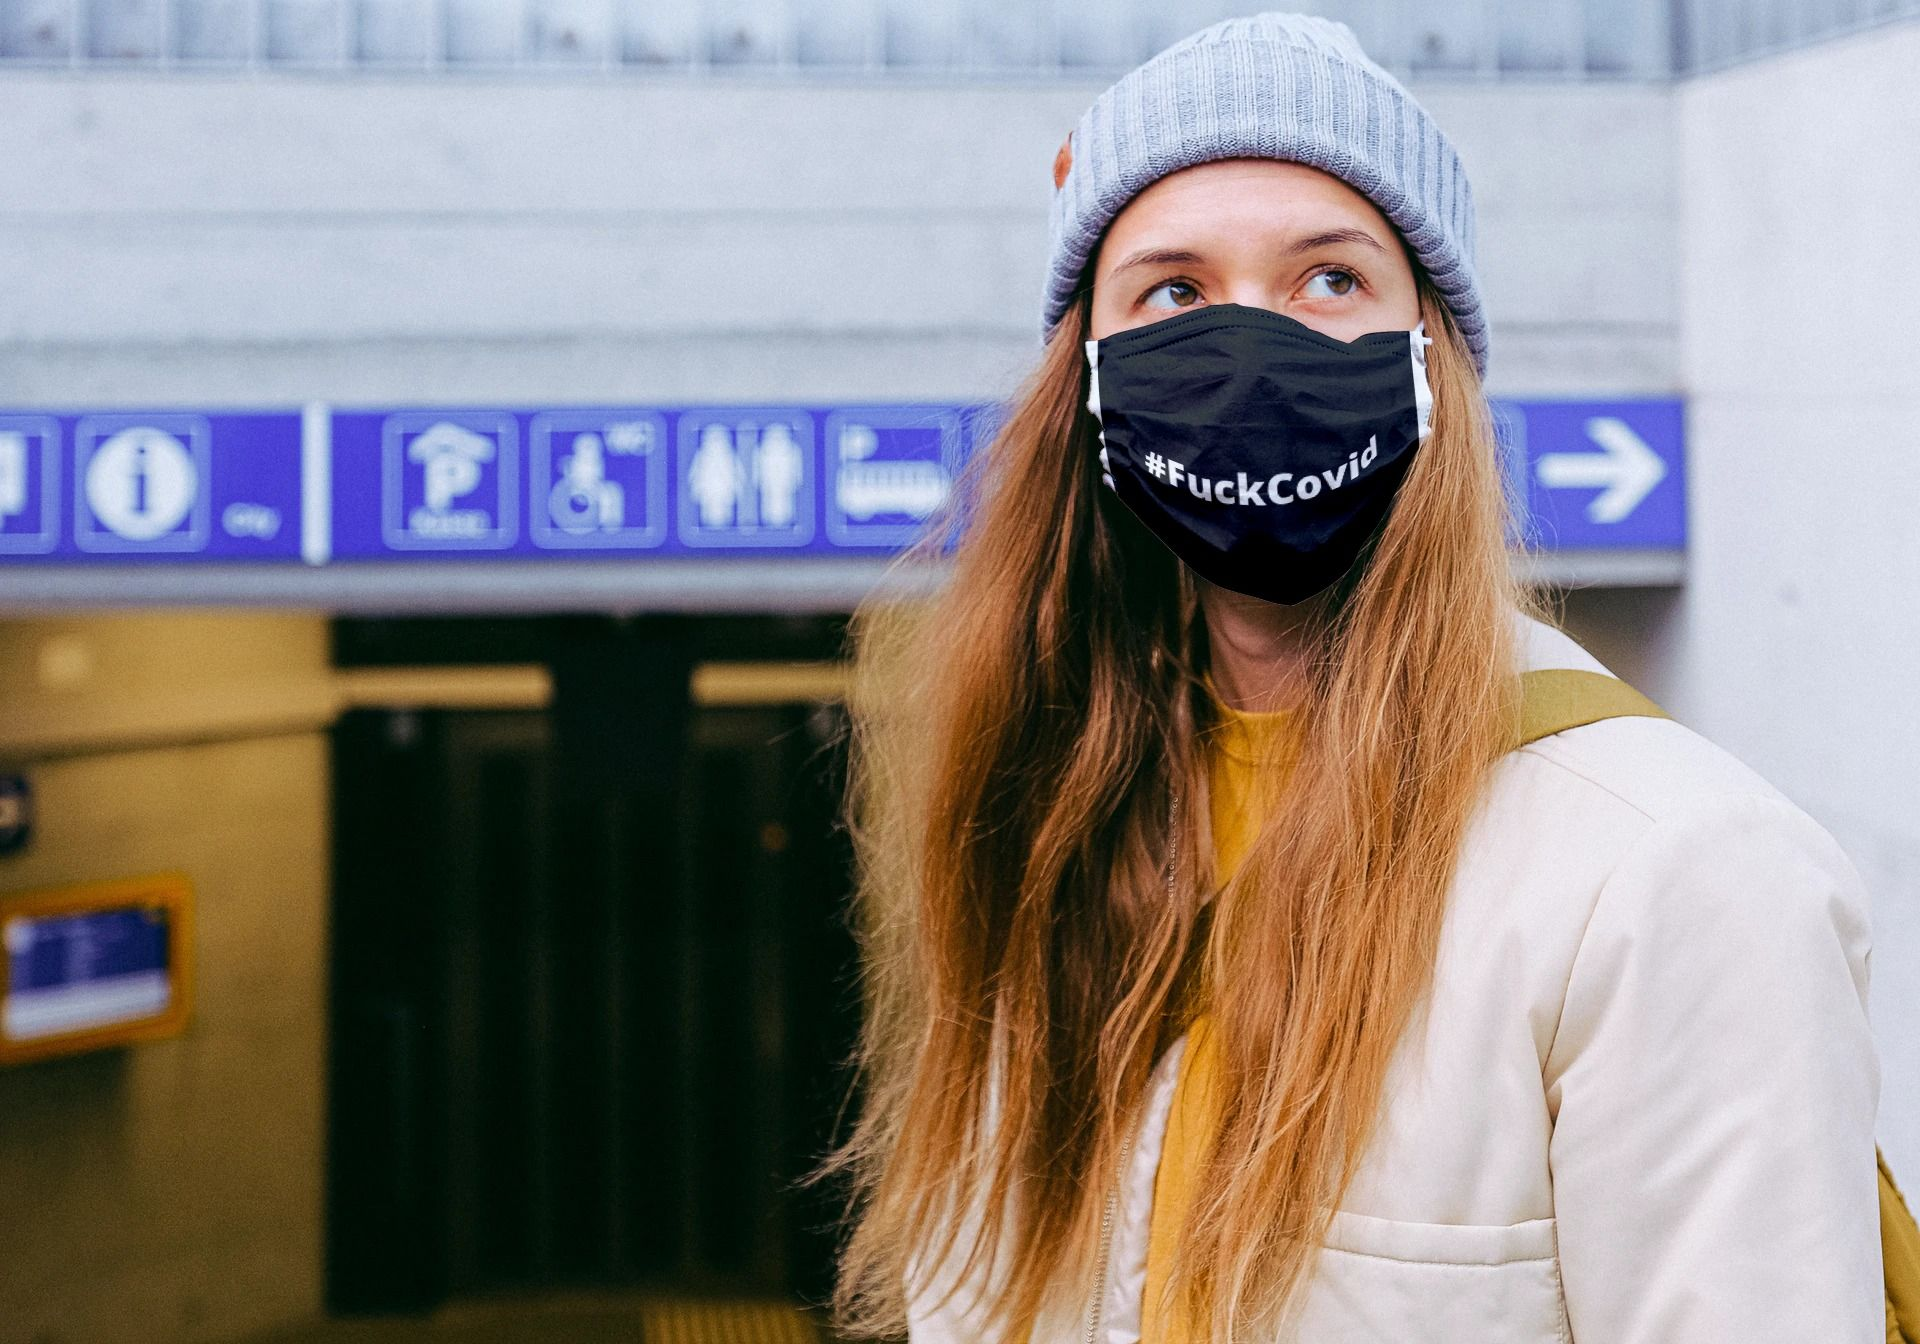 FuckCovid Face Mask in 2020 Mask, Face mask, Trending